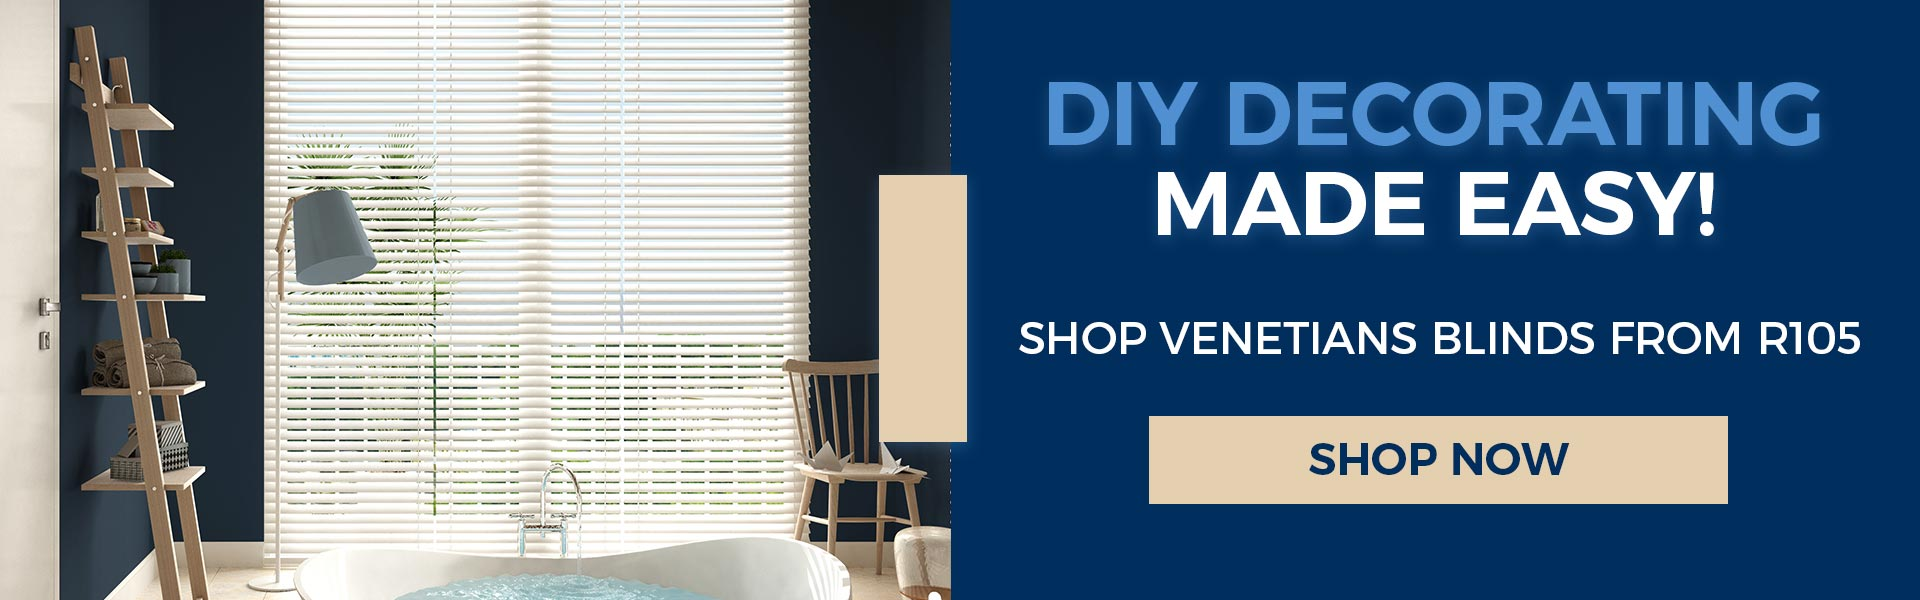 Finishing Touches - DIY Decorating Made Easy!